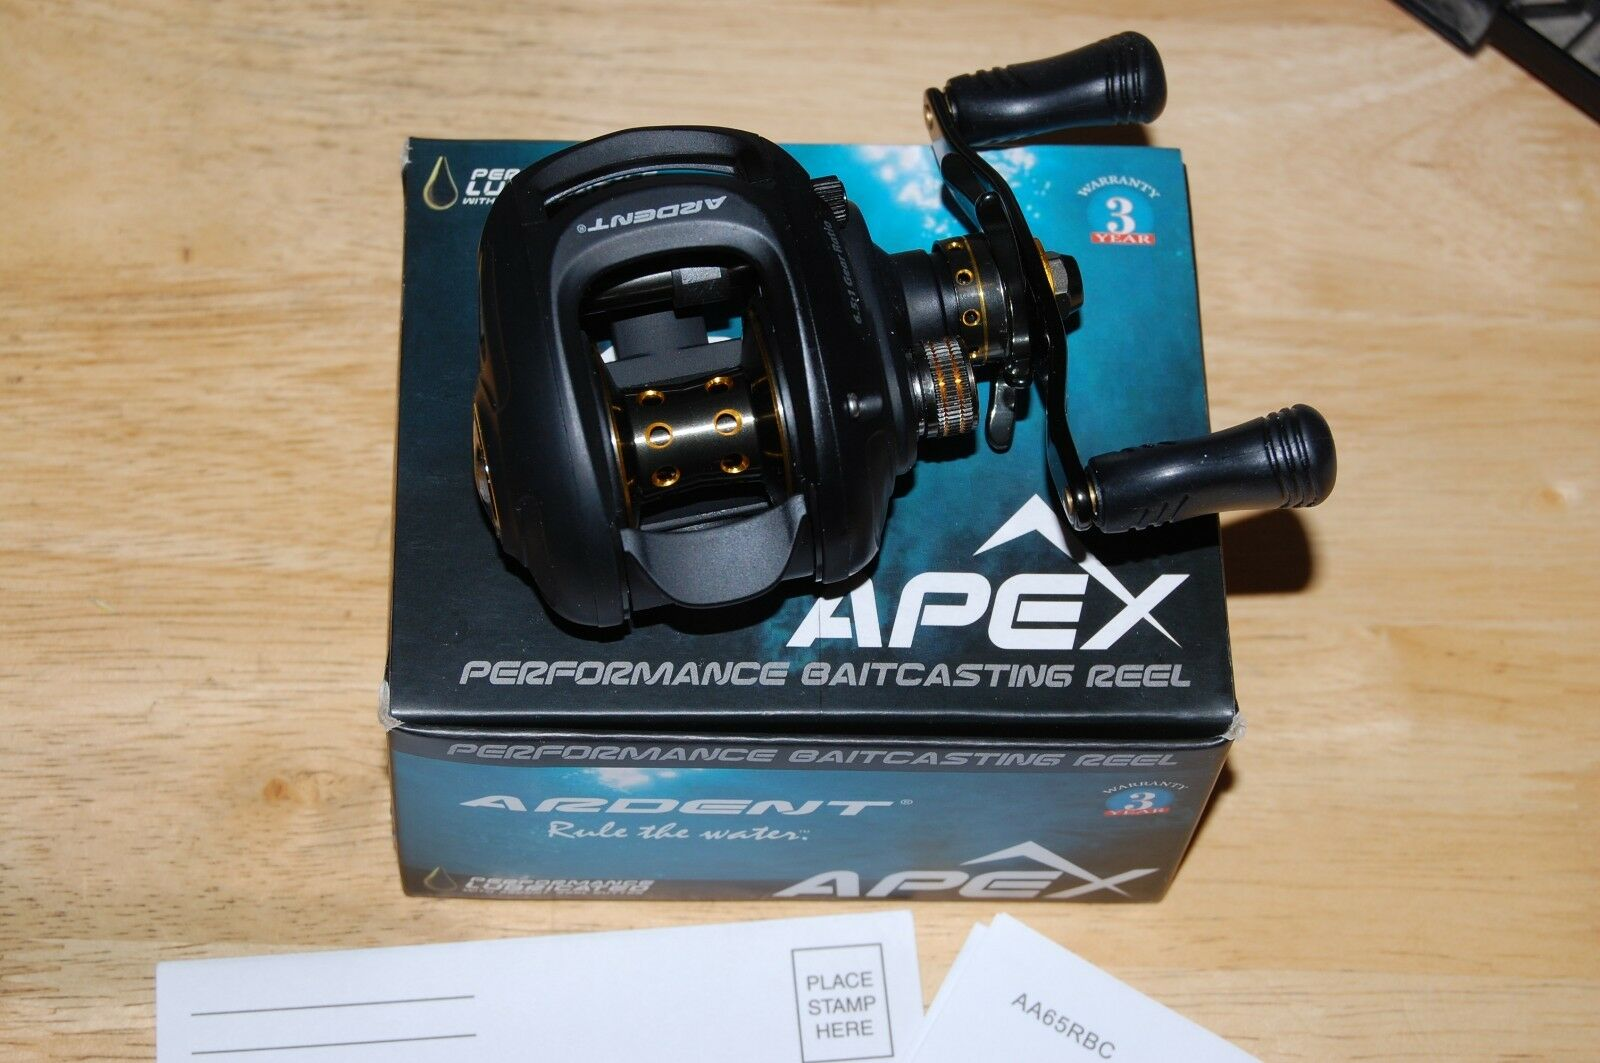 Ardent apex bass fishing reel baitcasting 81 high precision ball bearings 6.5 1